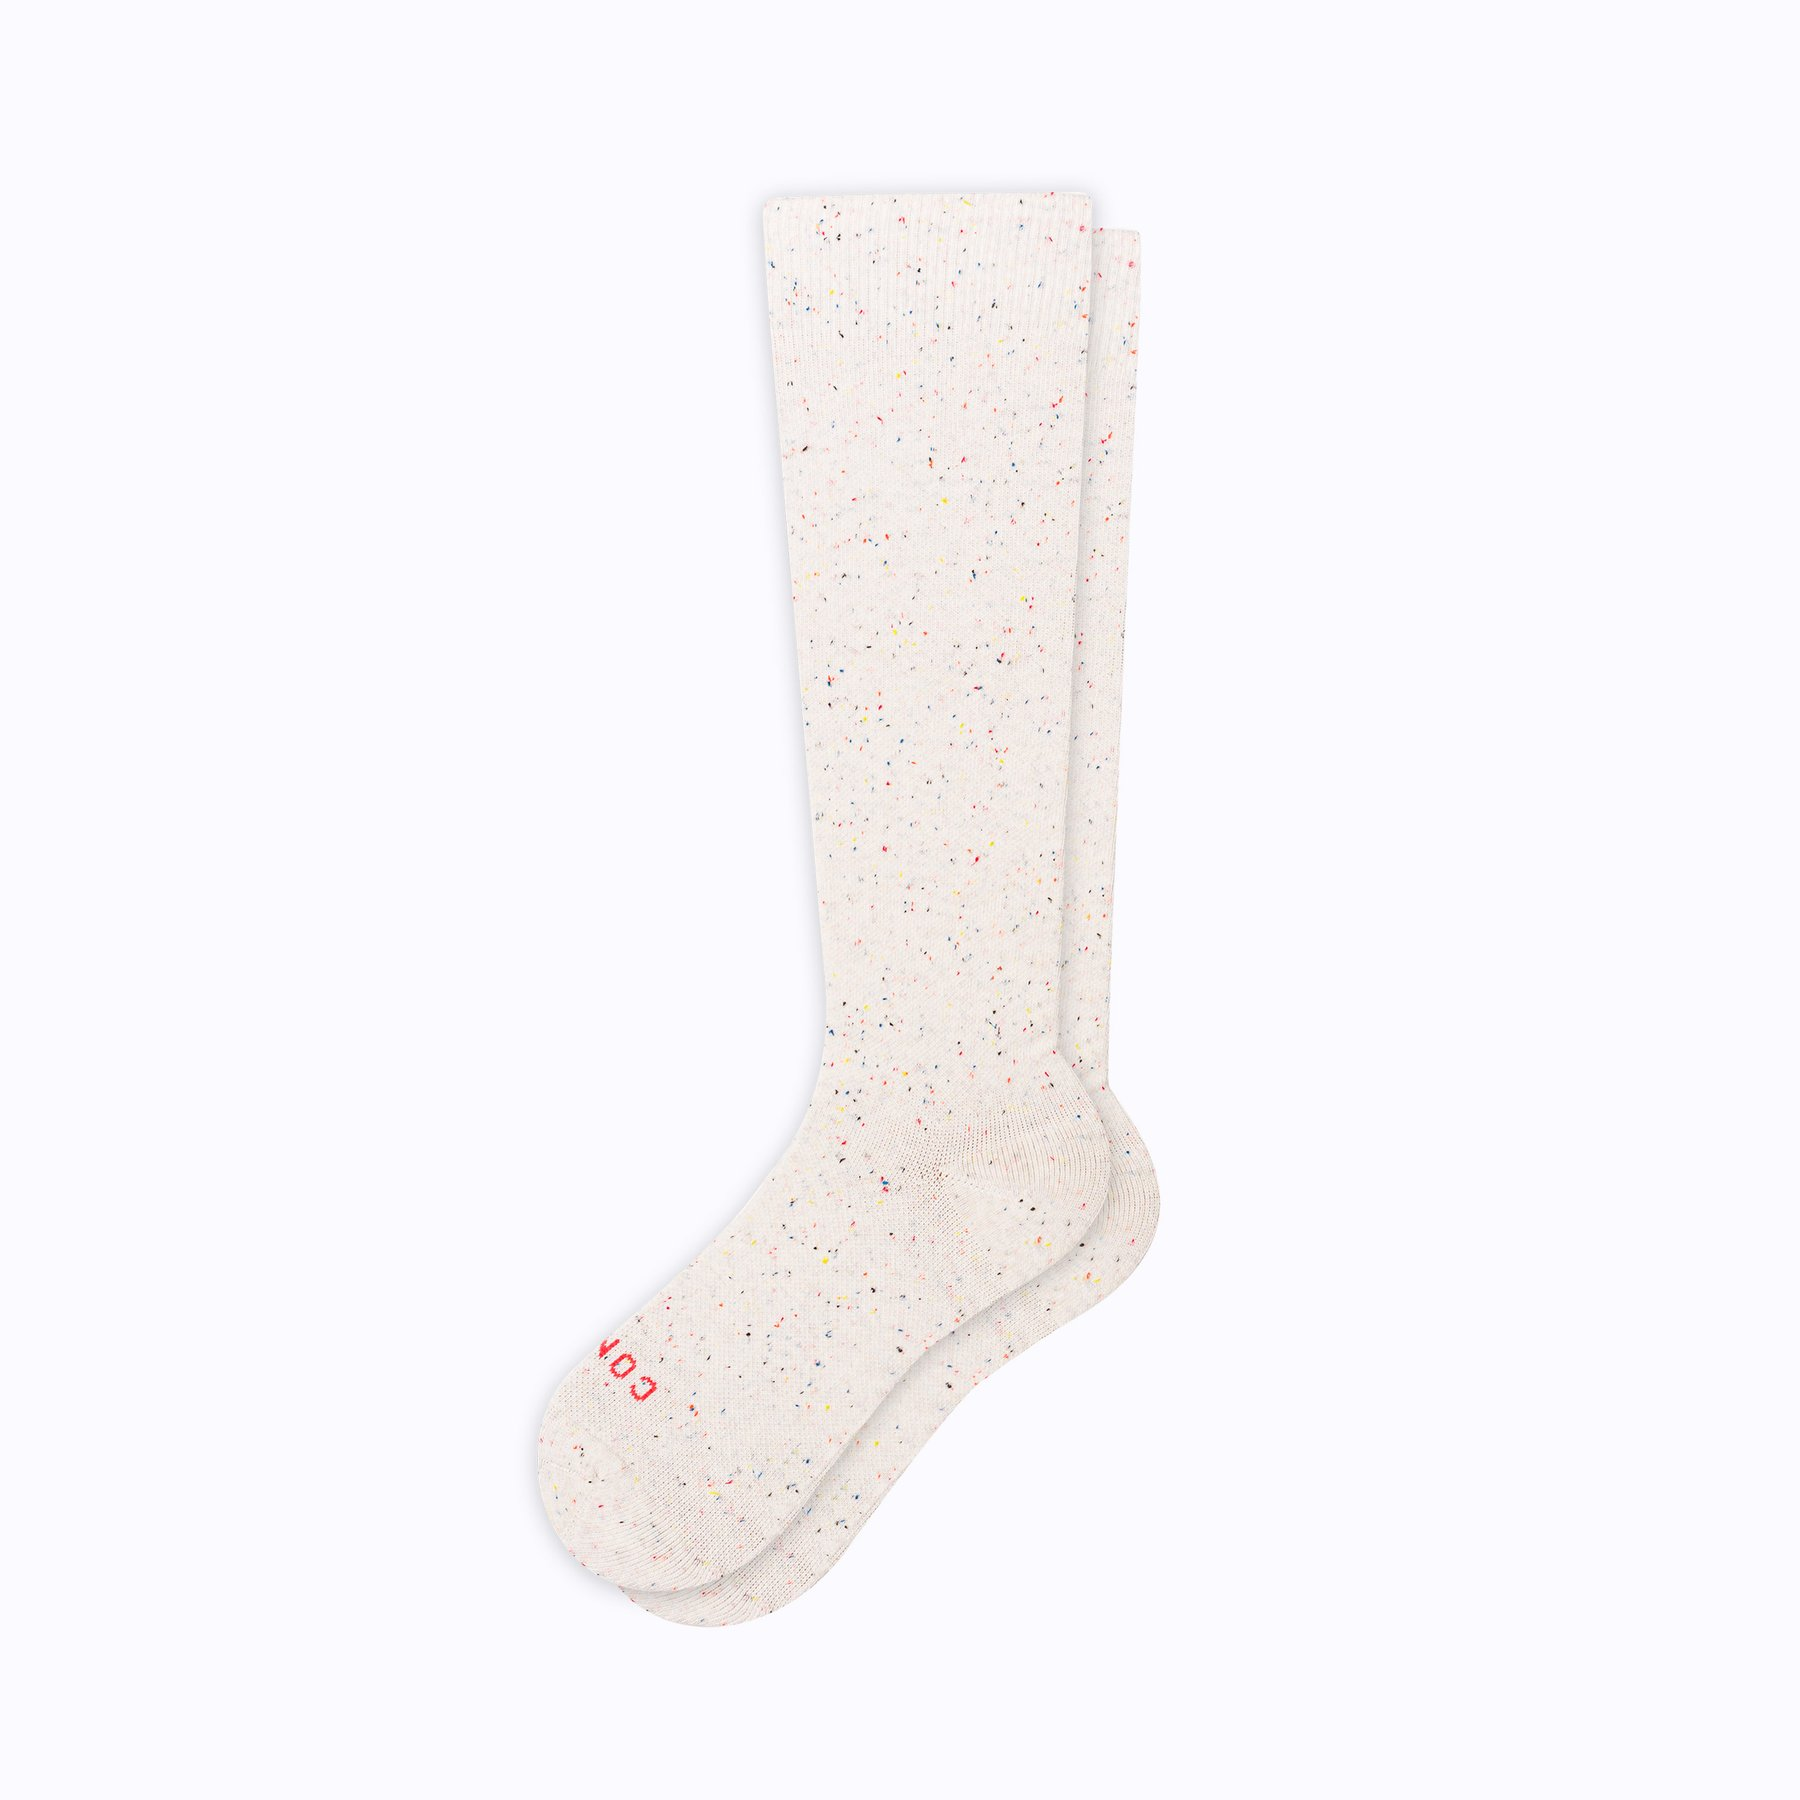 eco friendly recycled compression socks